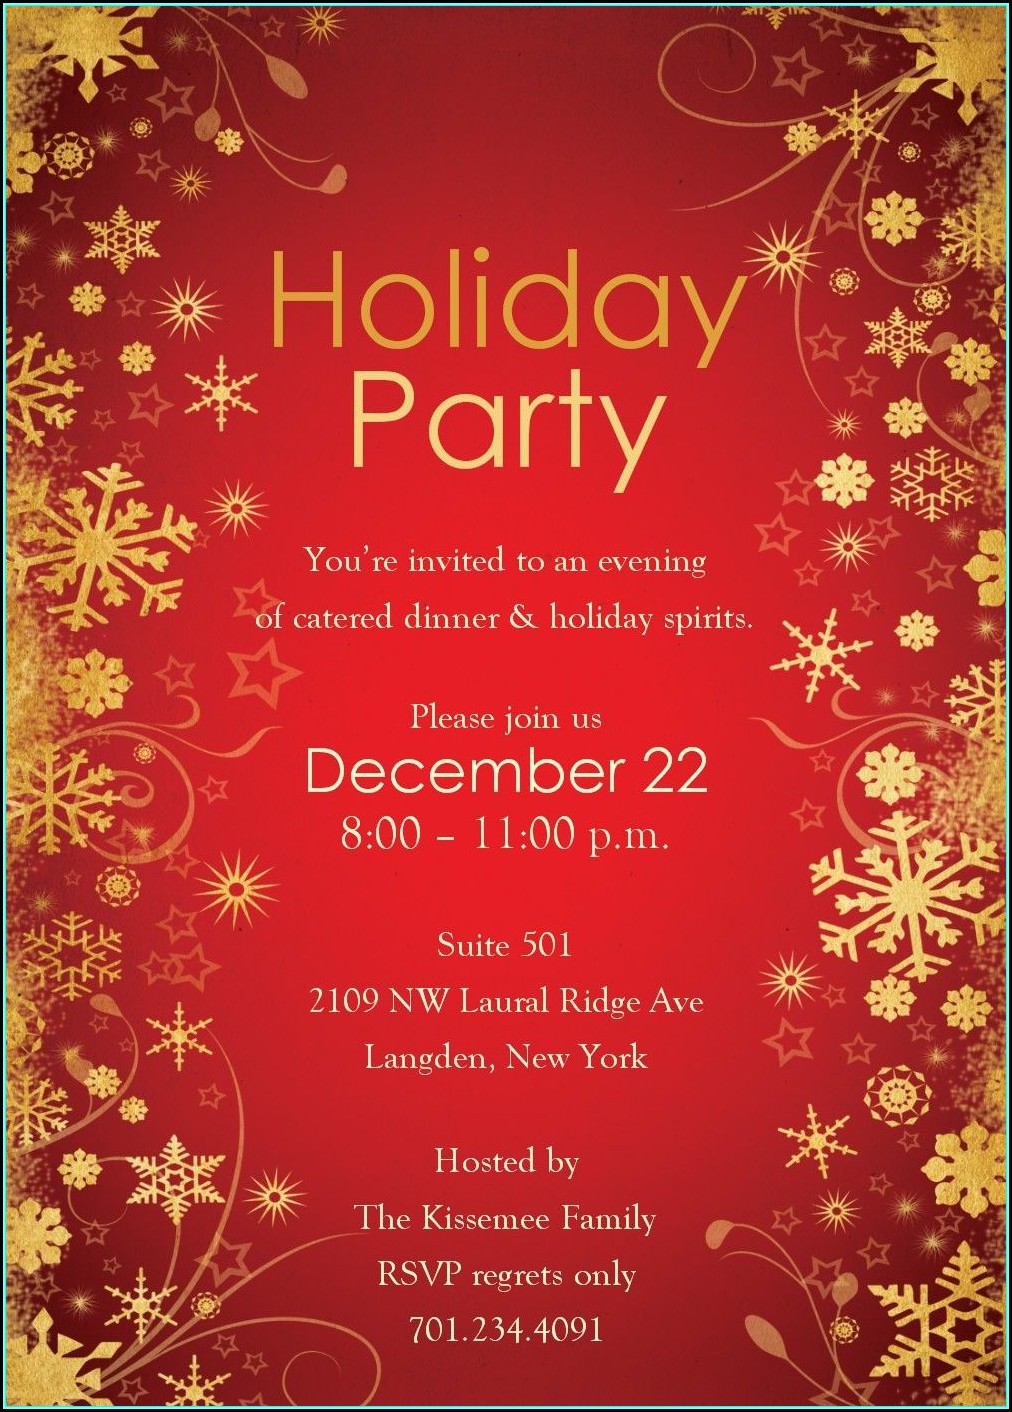 Party Invitation Template Word 2007